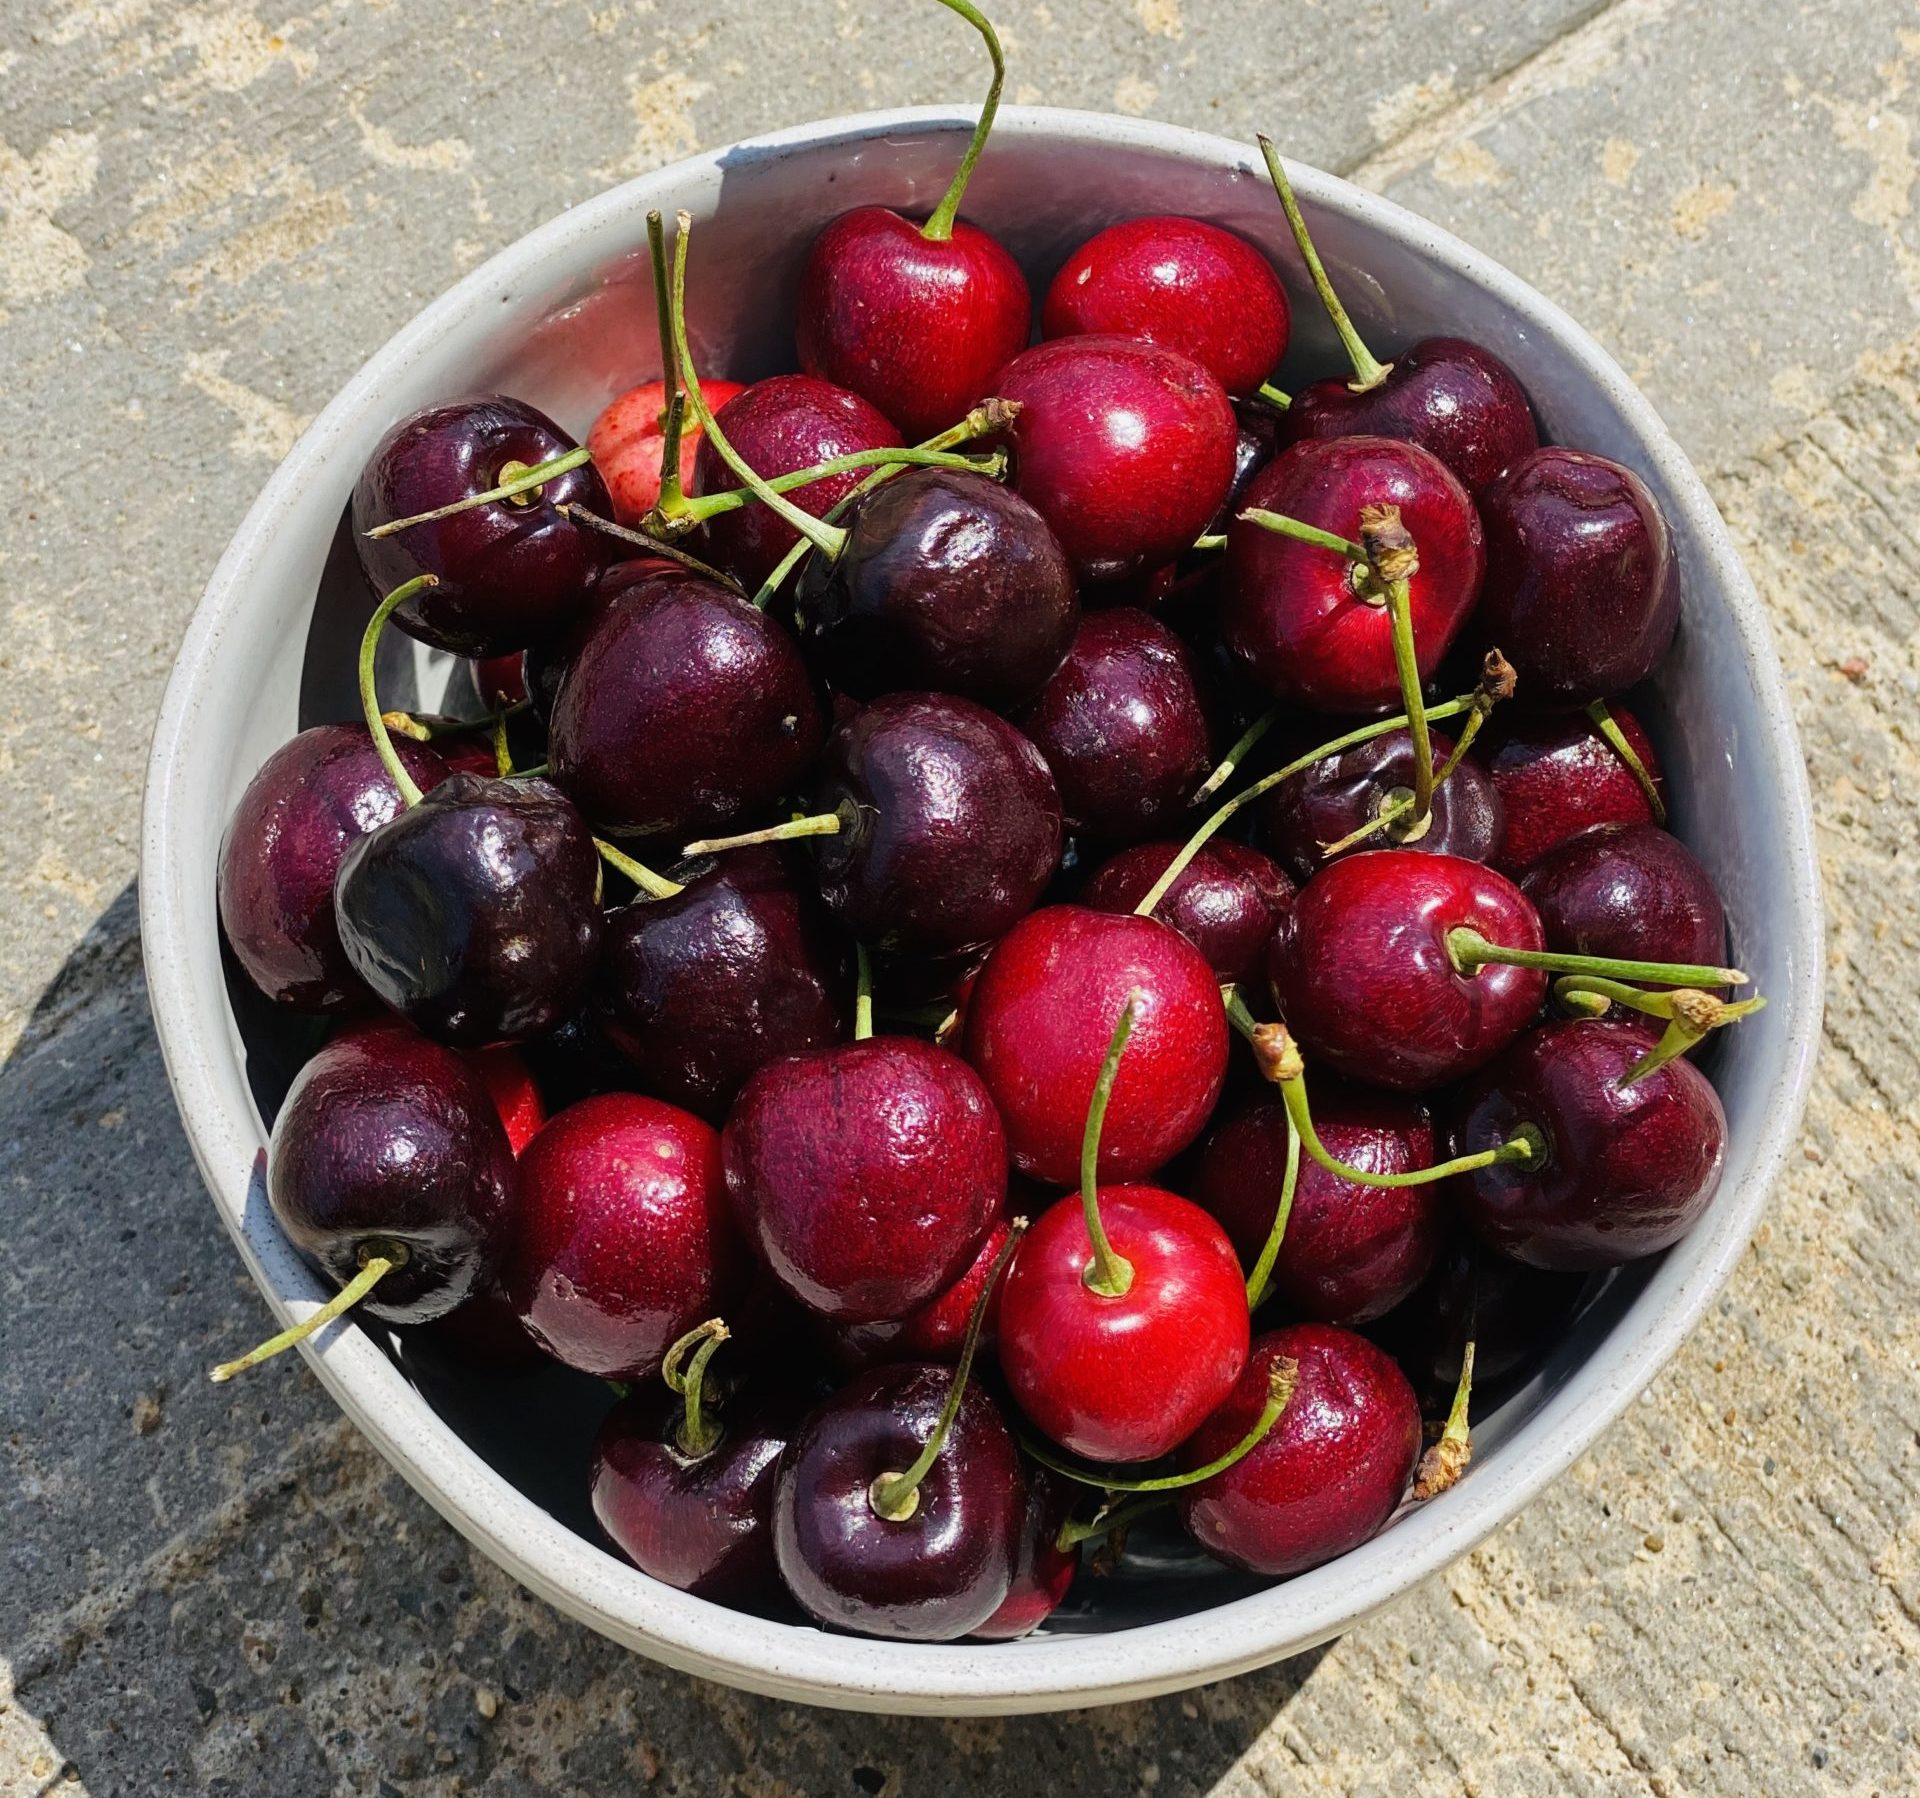 4 Reasons To Reach For Sweet Cherries When Coping With Stress Dr. Will Cole 1